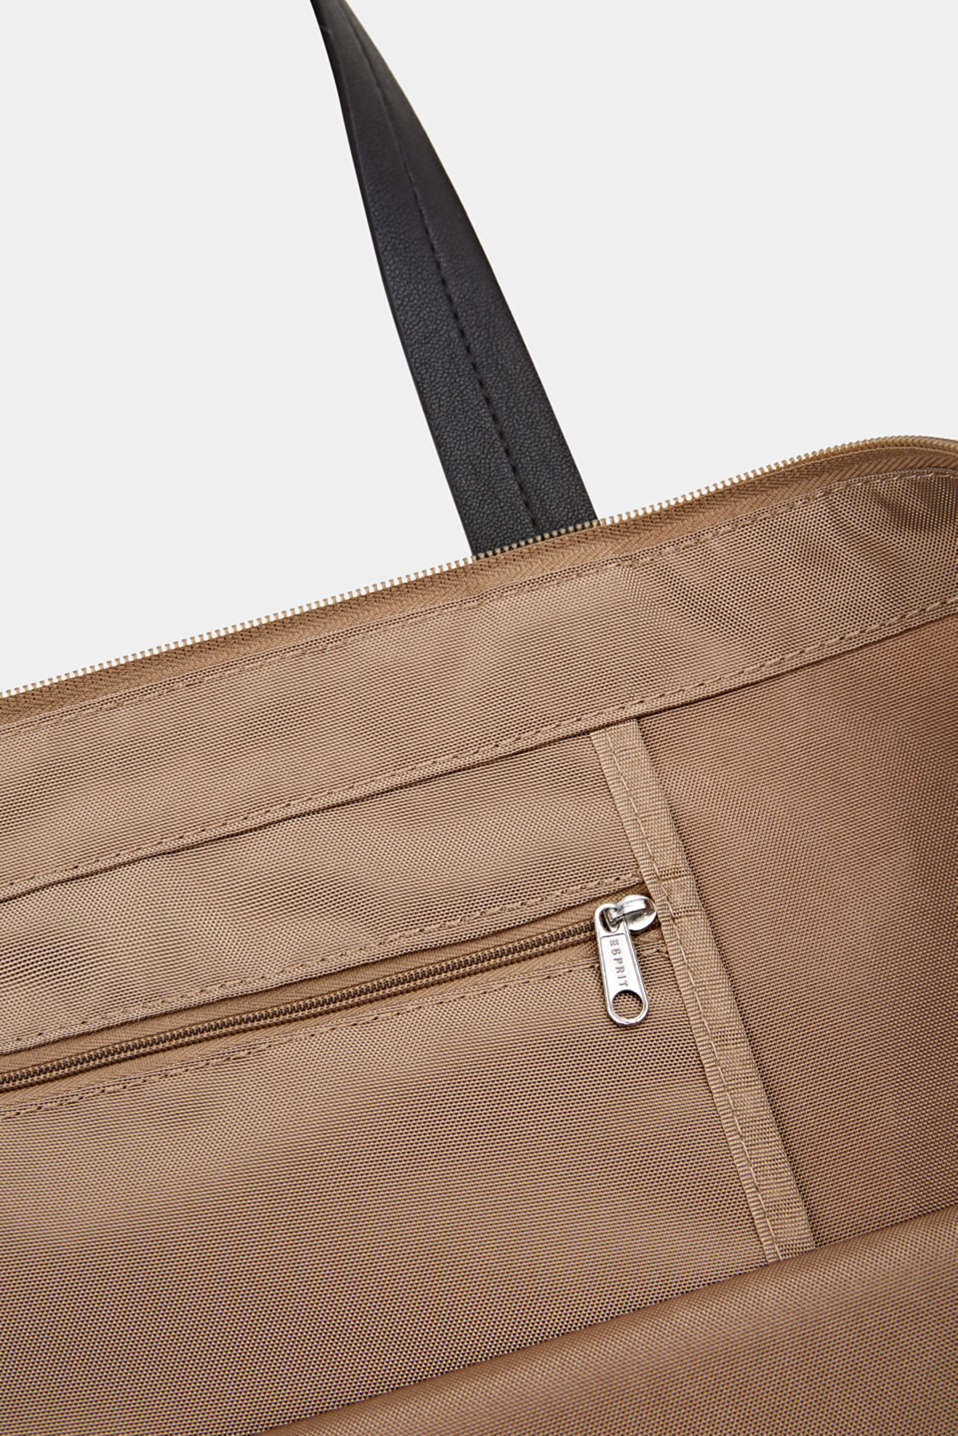 Nylon tote bag, BEIGE, detail image number 3